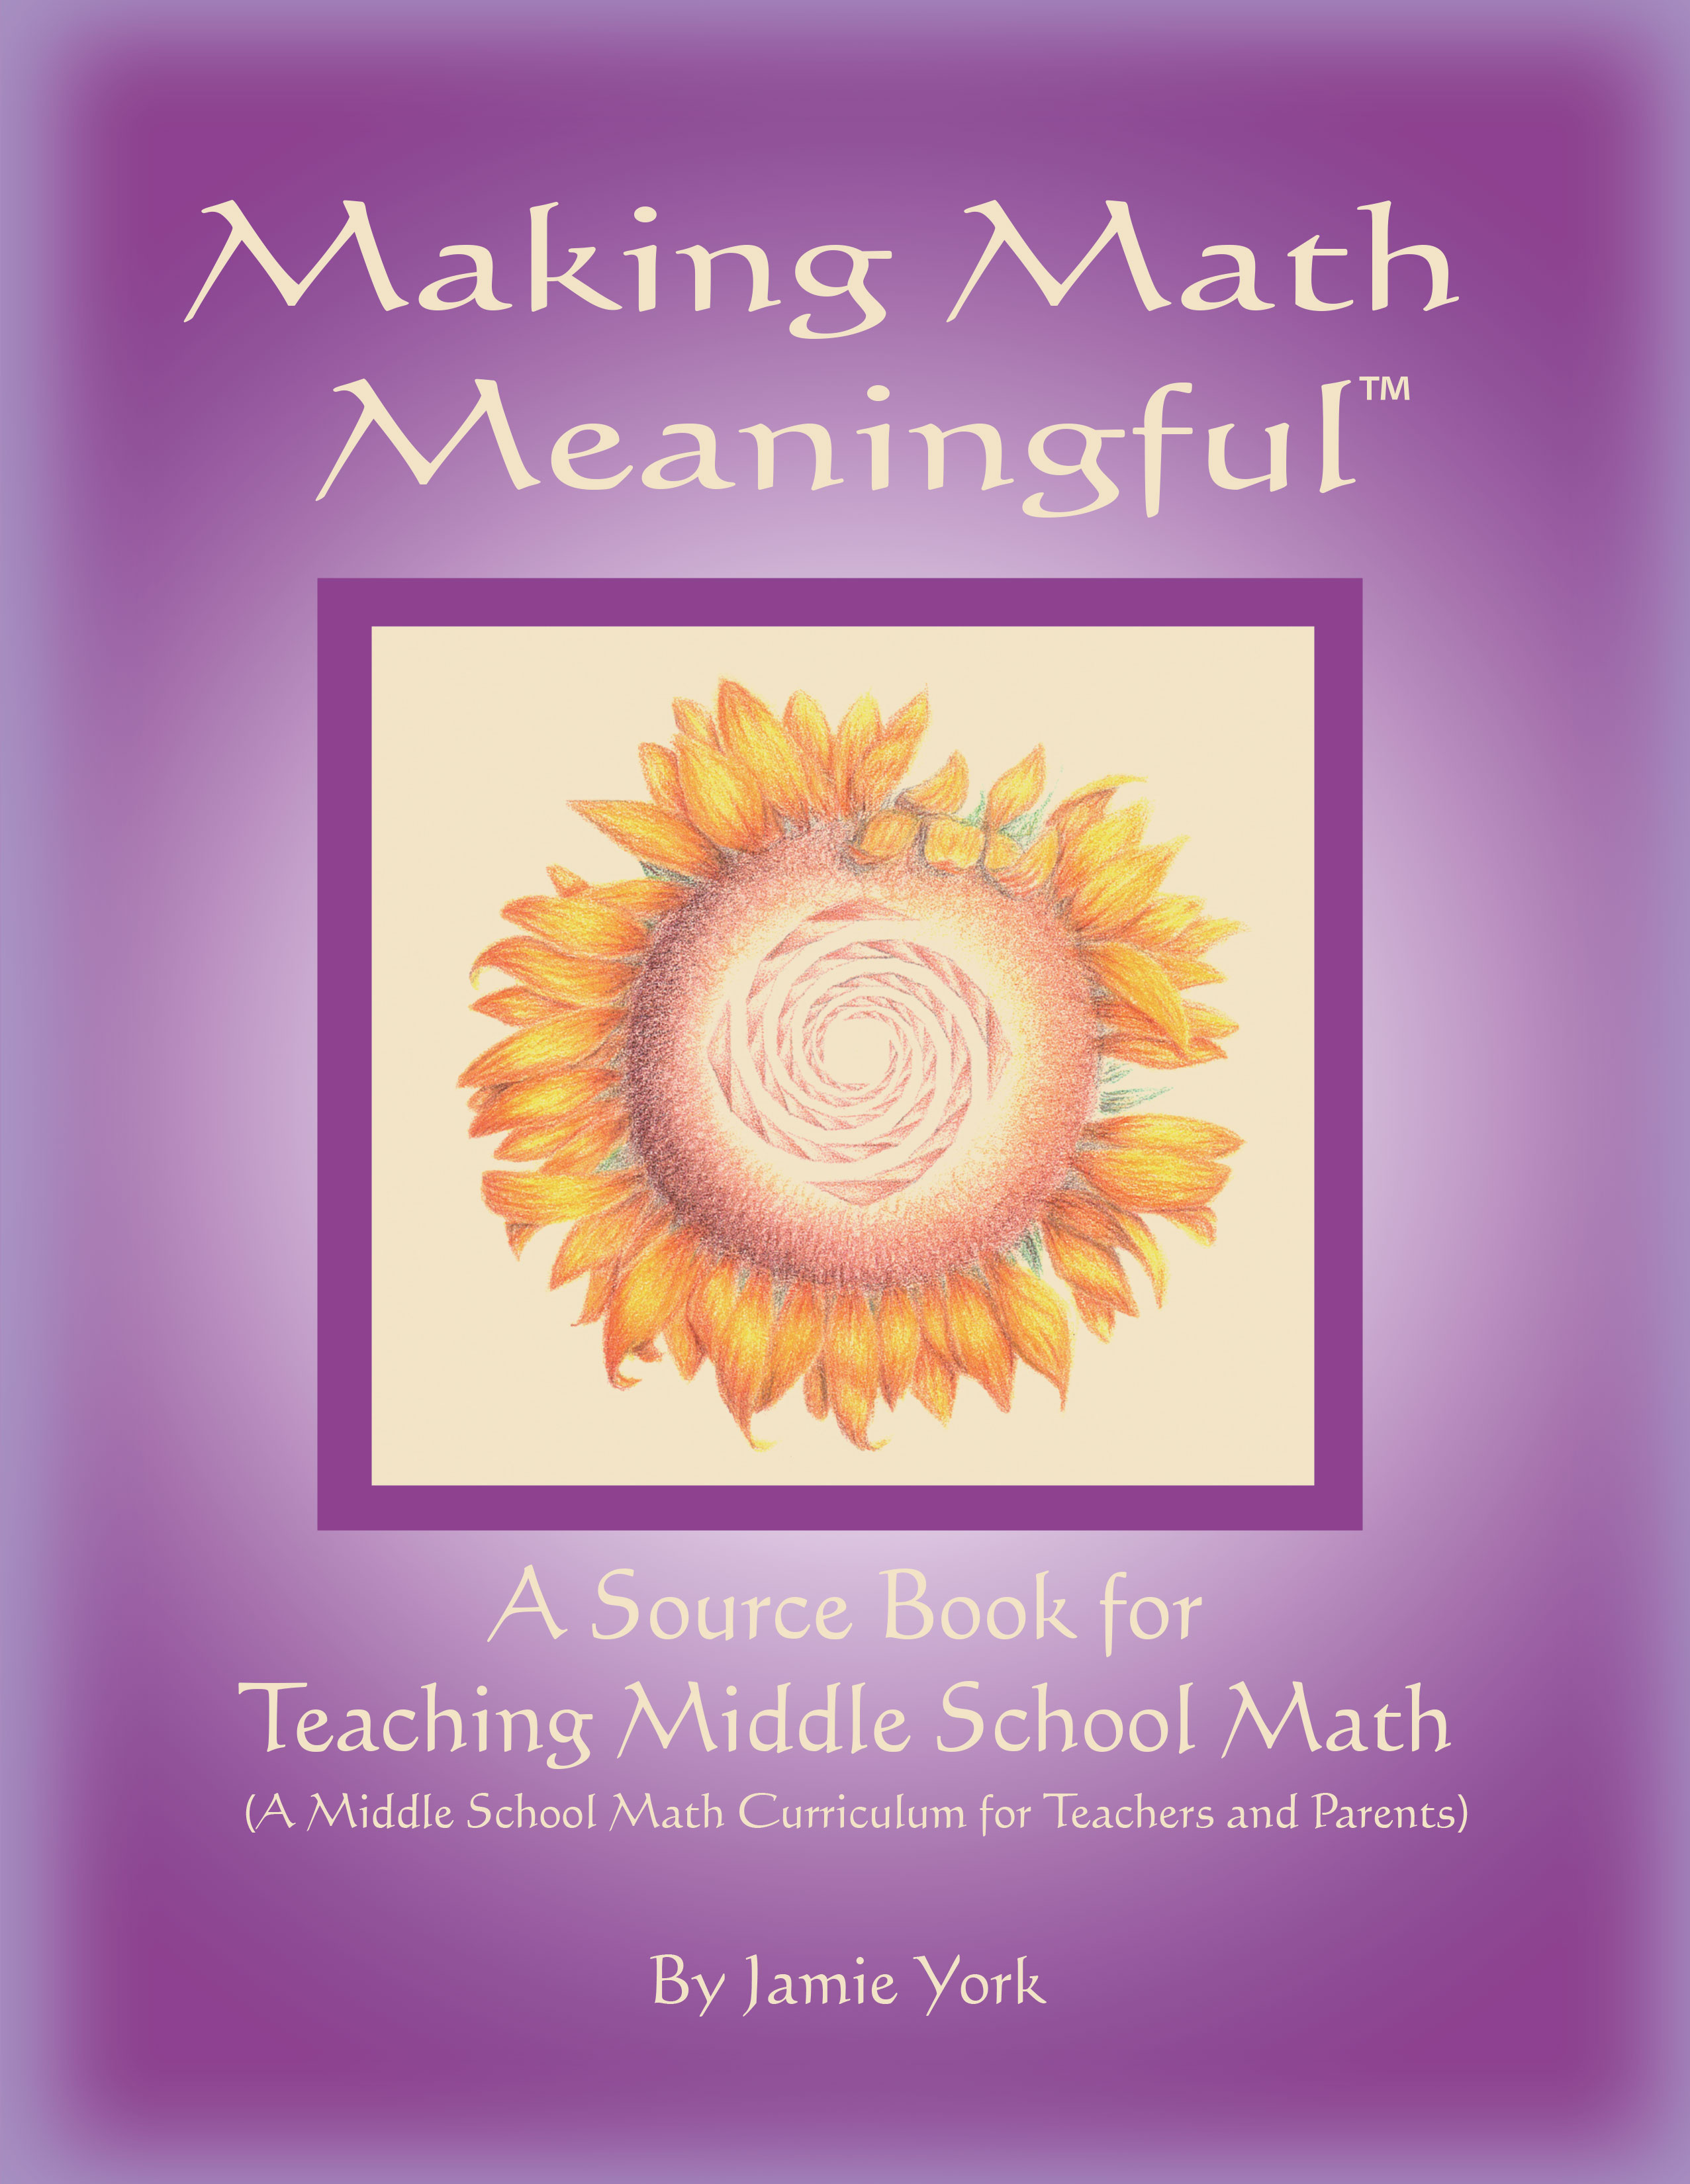 Source Book For Teaching Middle School Math